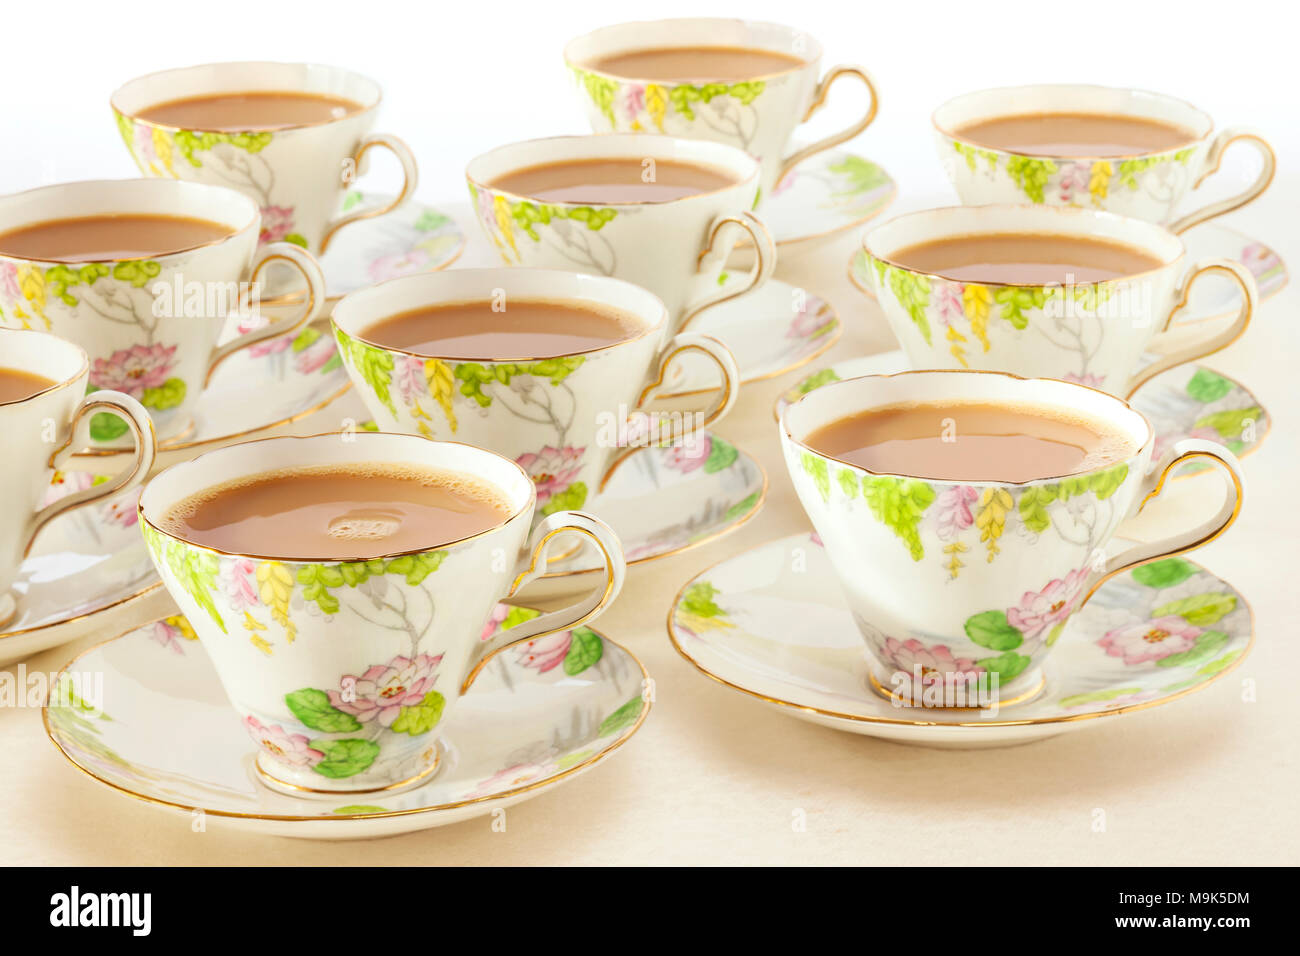 Tea Concept - cups of freshly poured tea in beautiful antique crockery. This image can be fully customised with the name of your cafe or tea room. Ple - Stock Image